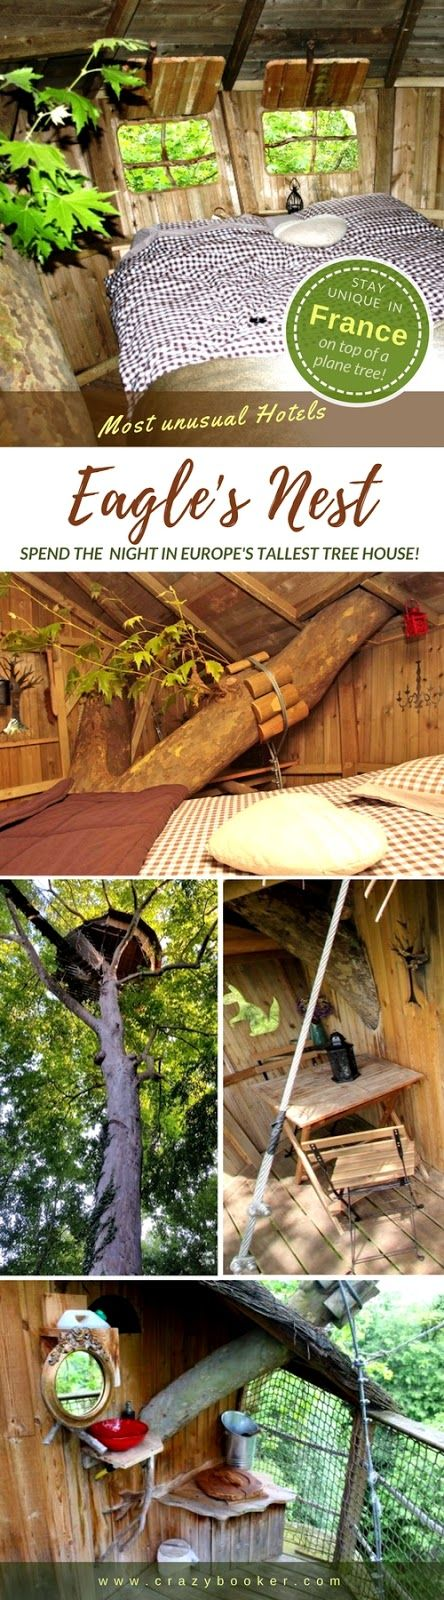 Travel to Eagle's Nest in France | In the highest tree house of Normandy (and all of Europe) you really do sleep like birds in trees | The tree hut accommodates 2 people and offers stunning views of the lush scenery of Calvados | Easy access is provided via three suspension bridges and a ladder (only for adults without vertigo!) #treehouse #normandy #calvados